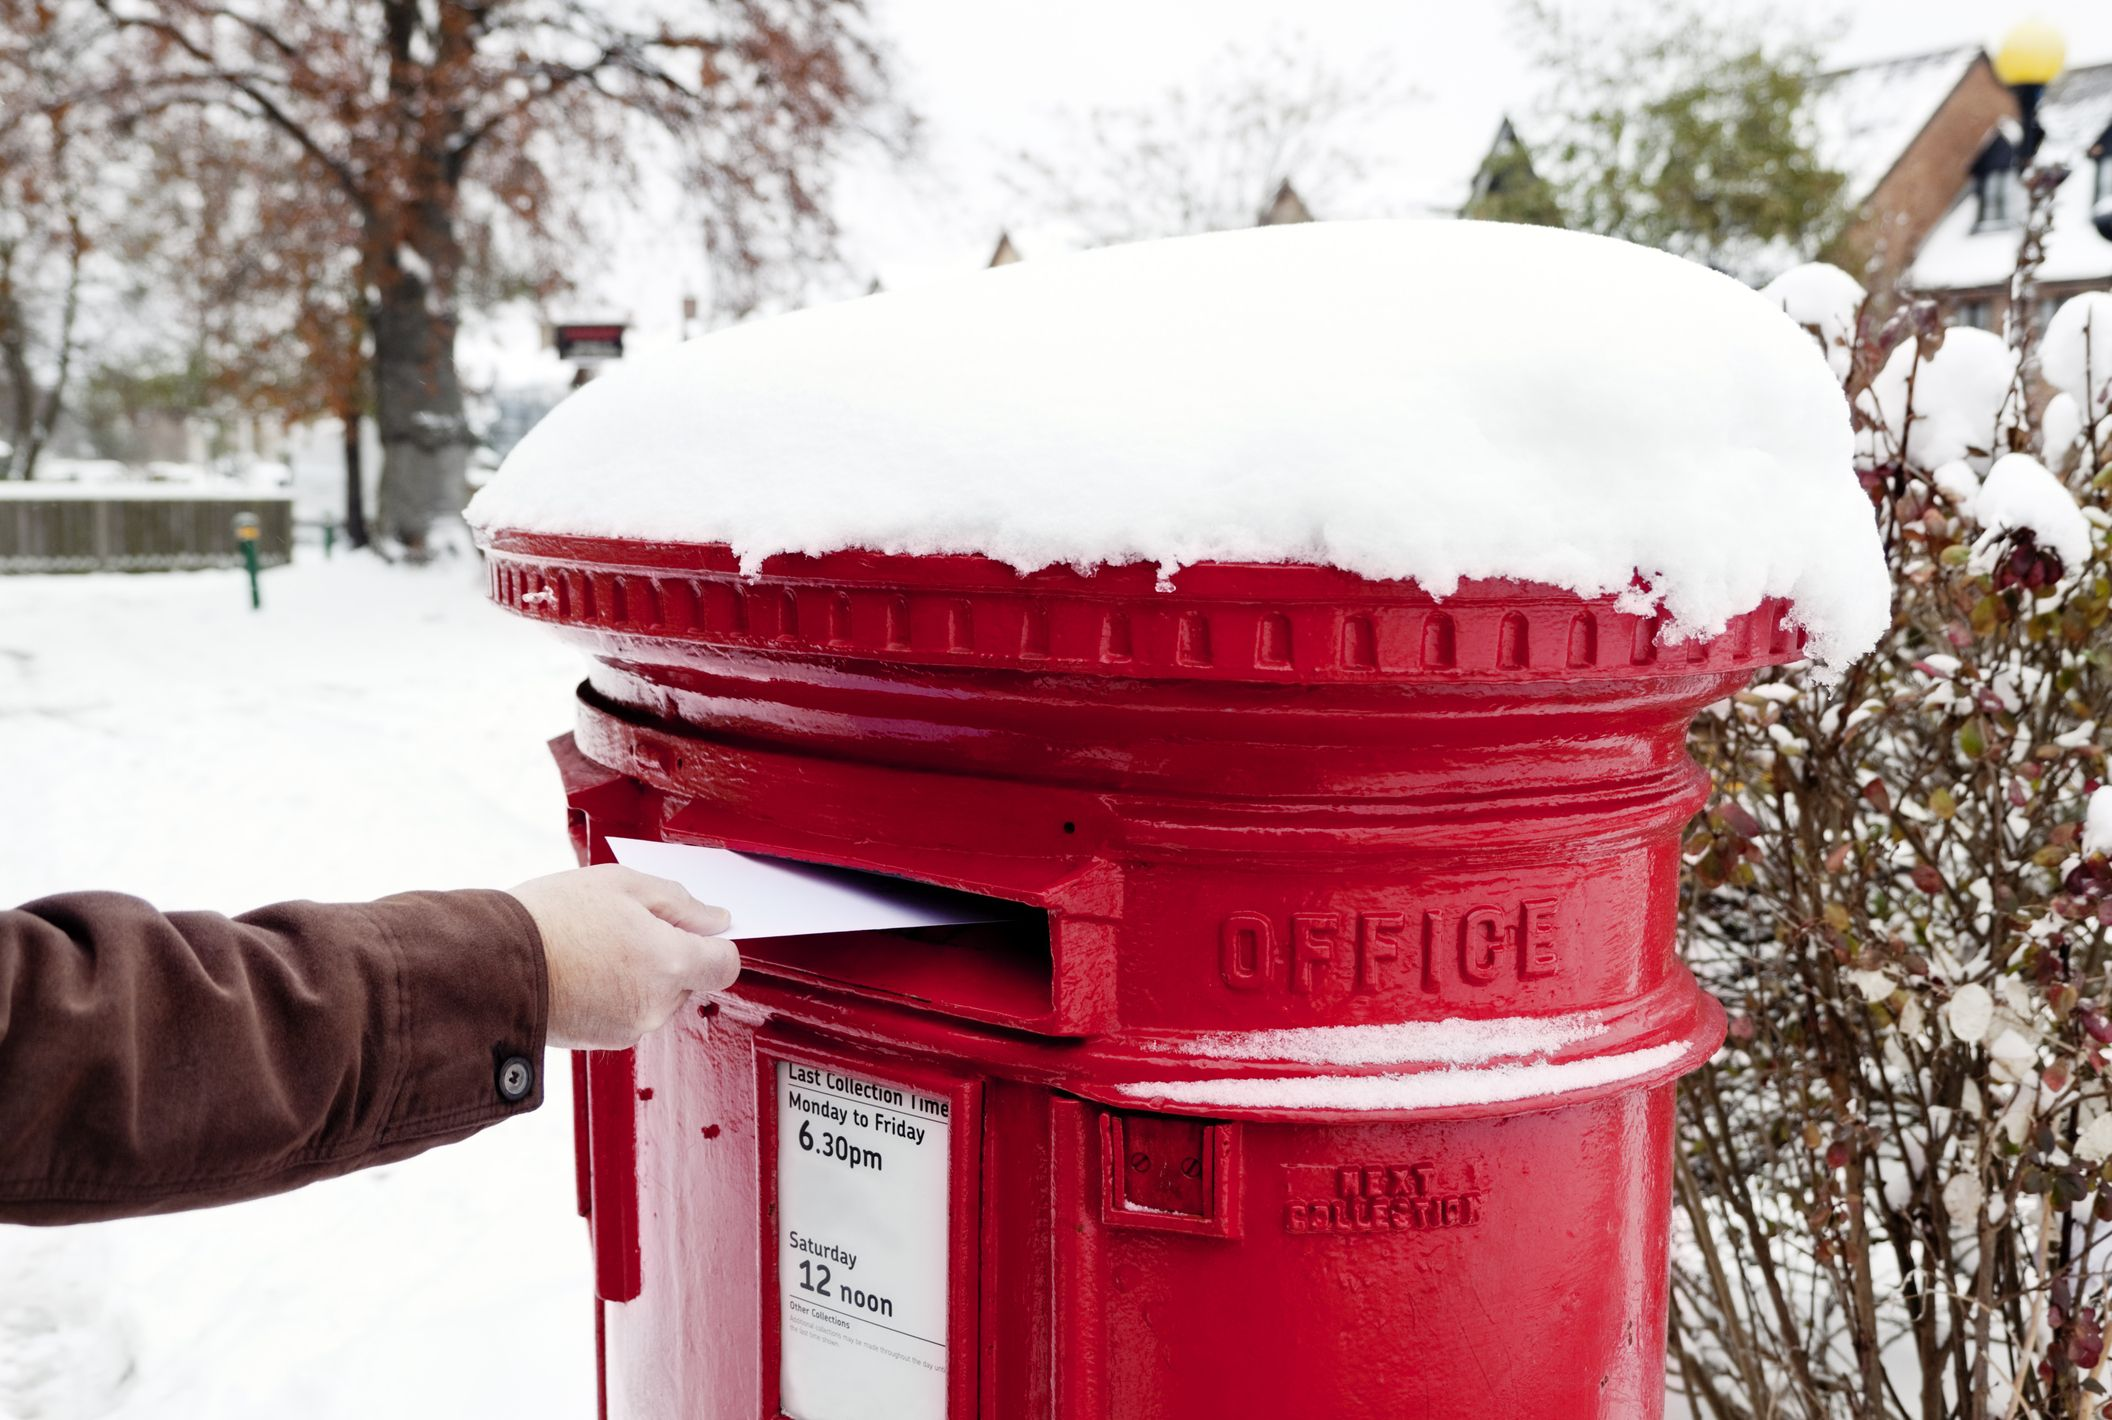 The Royal Mail has released the Christmas last posting dates